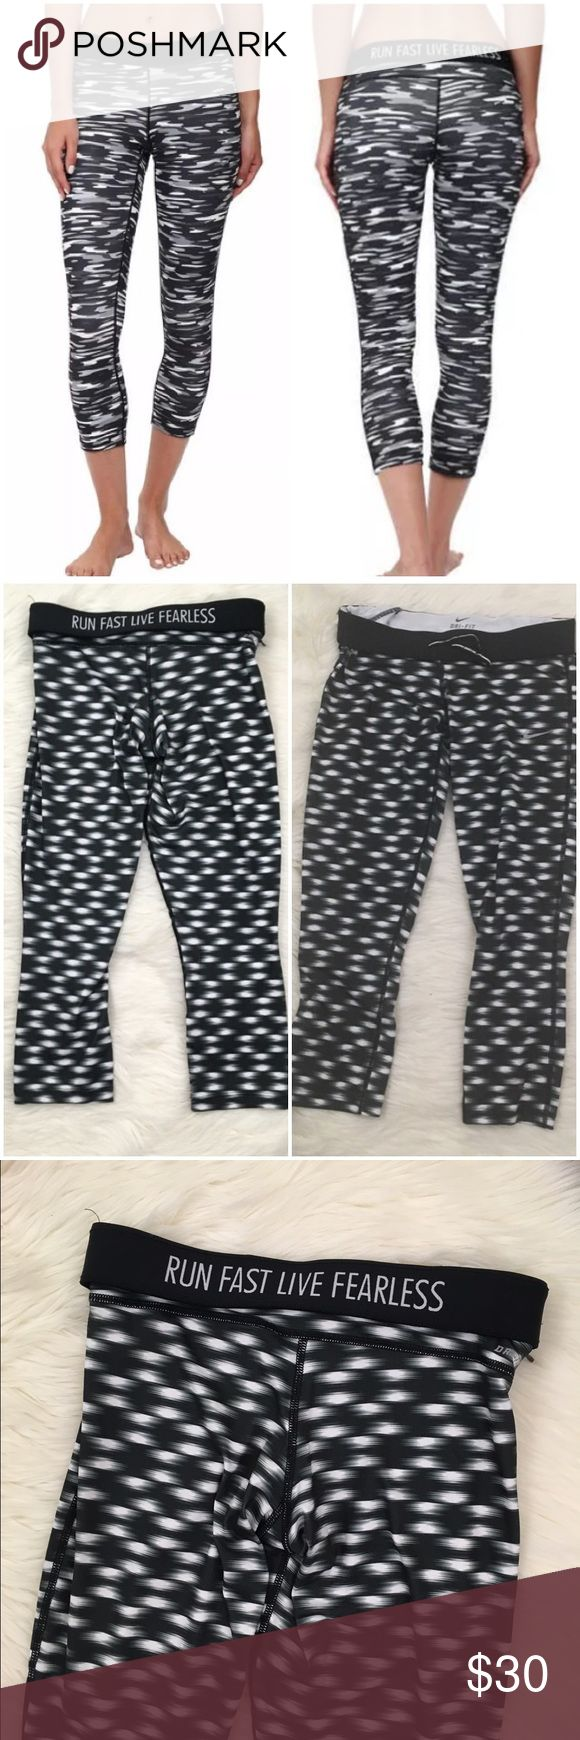 """Nike Run Fast Live Fearless Cropped Legging Nike fitness workout legging with foldover quoted spandex stretch waist with text """"run fast live fearless"""". Black and white text and Capri cut. Great condition. Nike Pants Ankle & Cropped"""